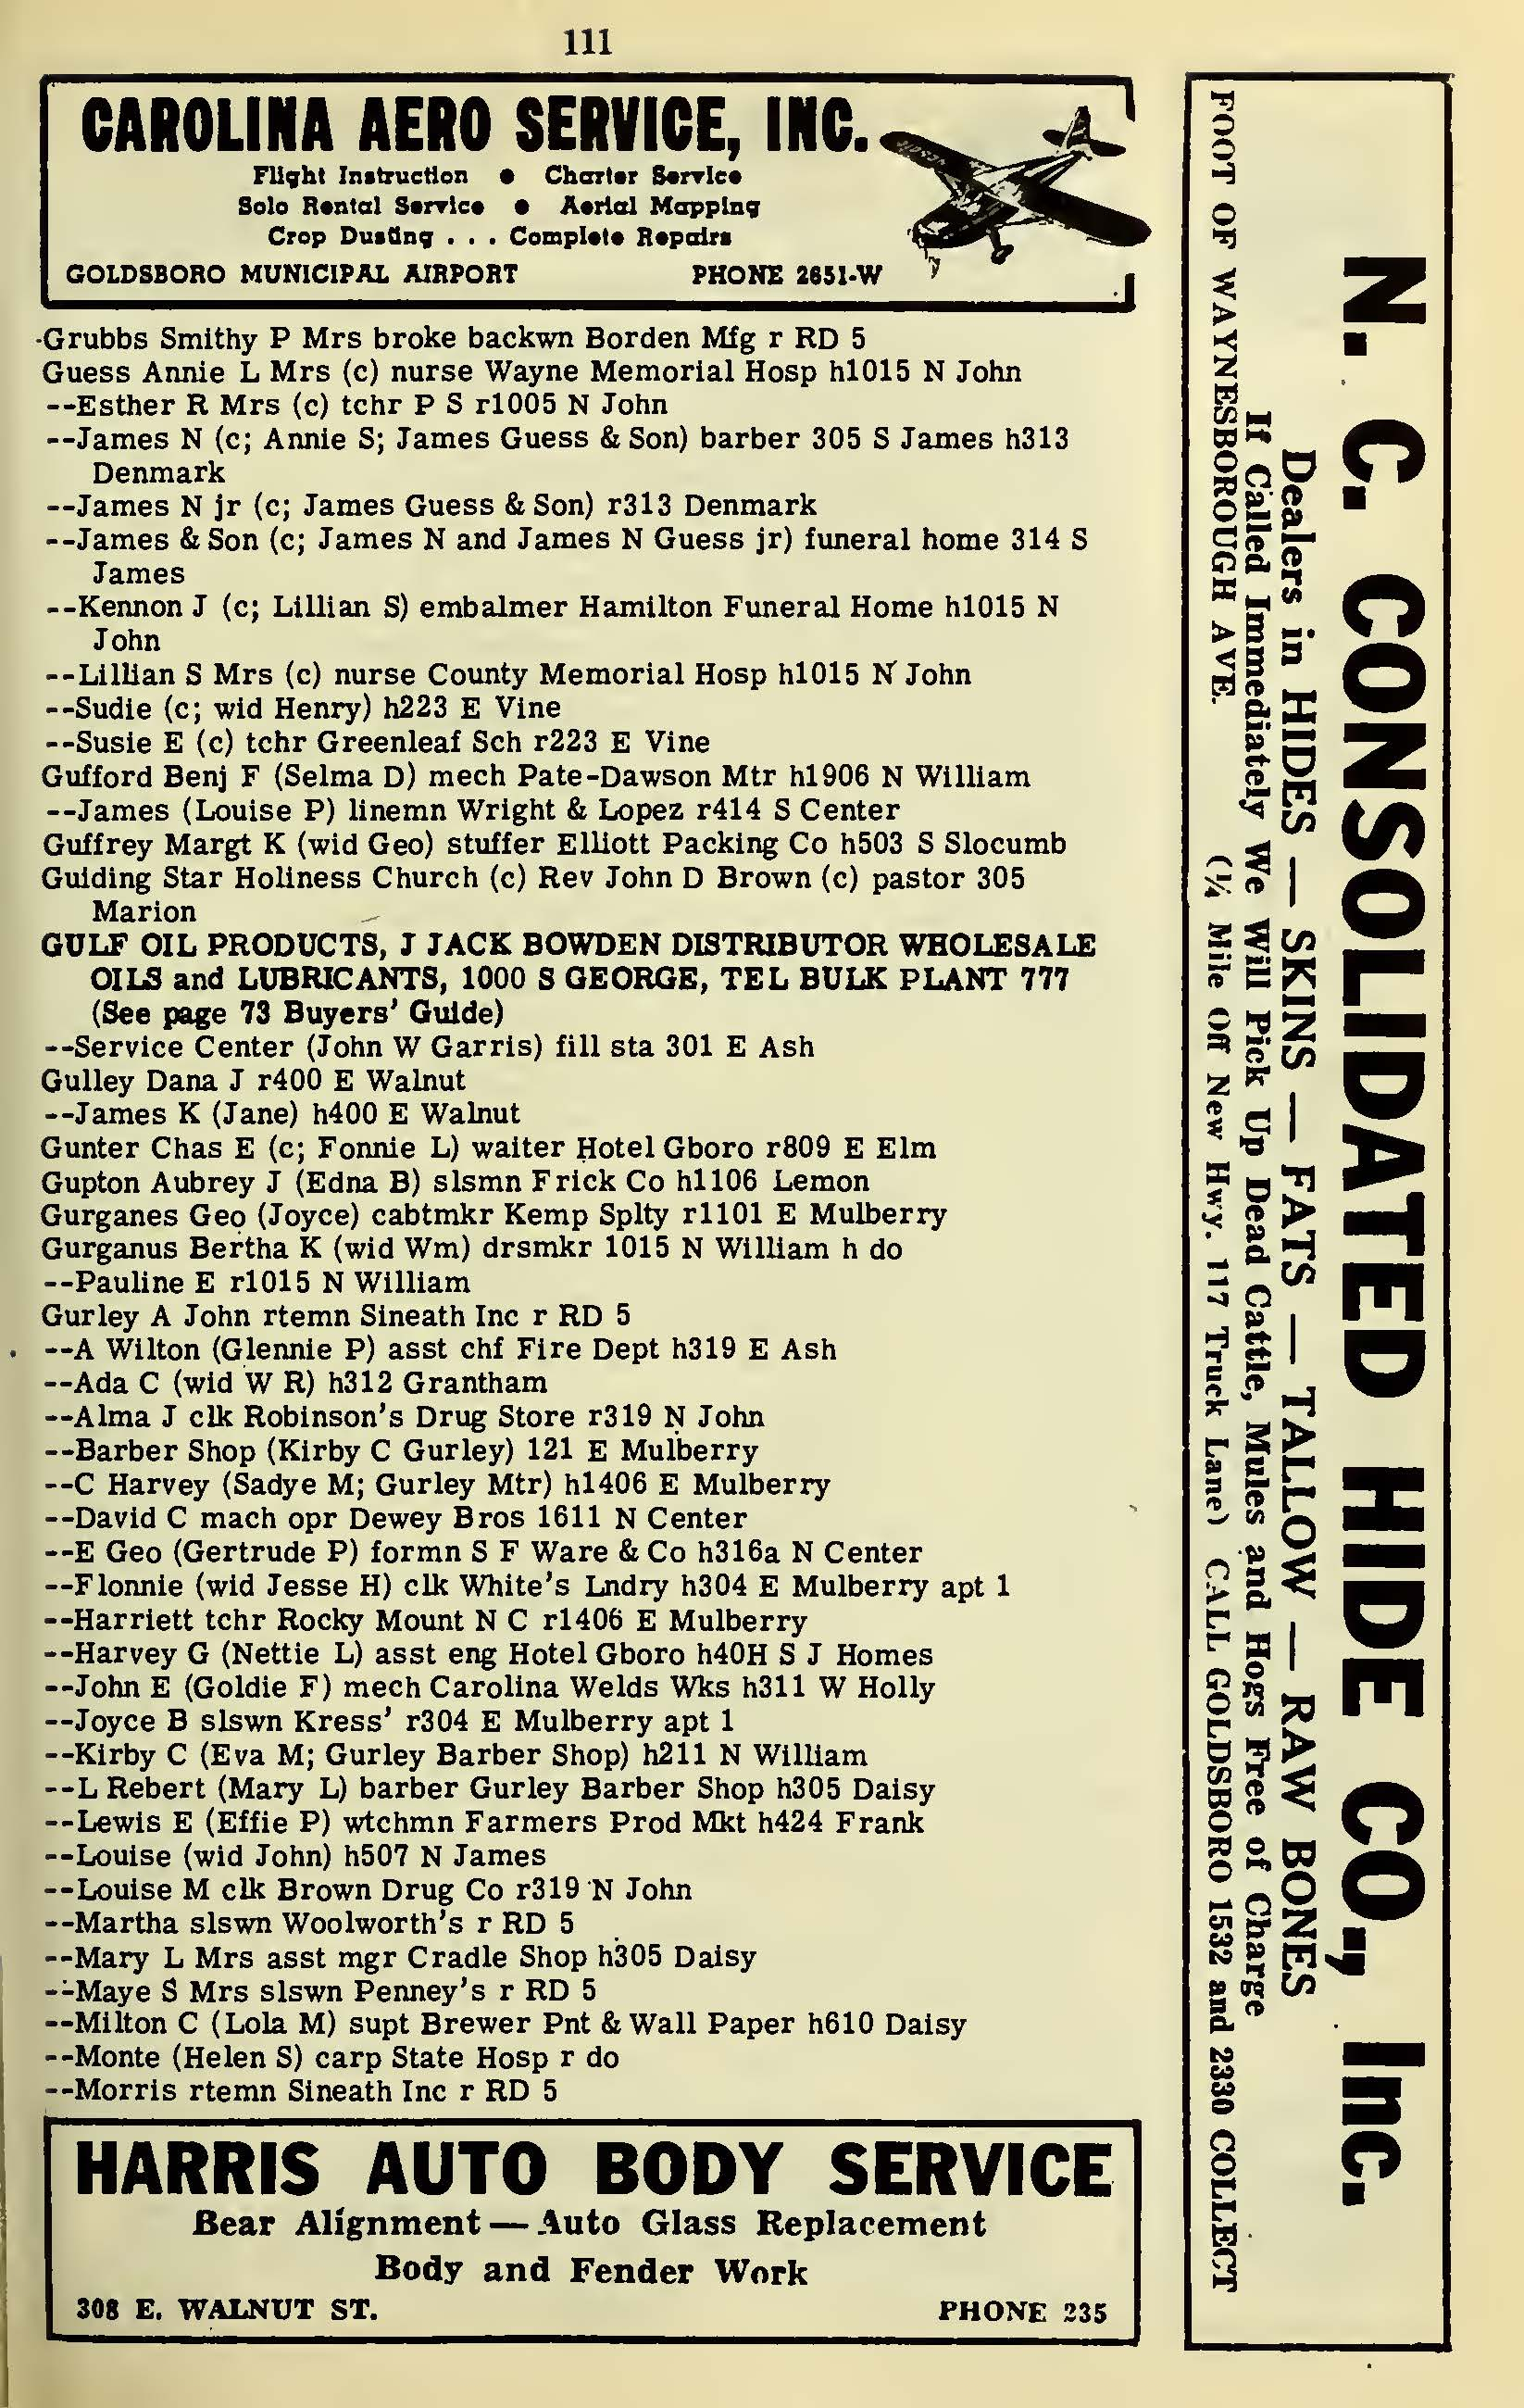 paternal kin genealogy page  hill s directory of goldsboro nc 1950 51